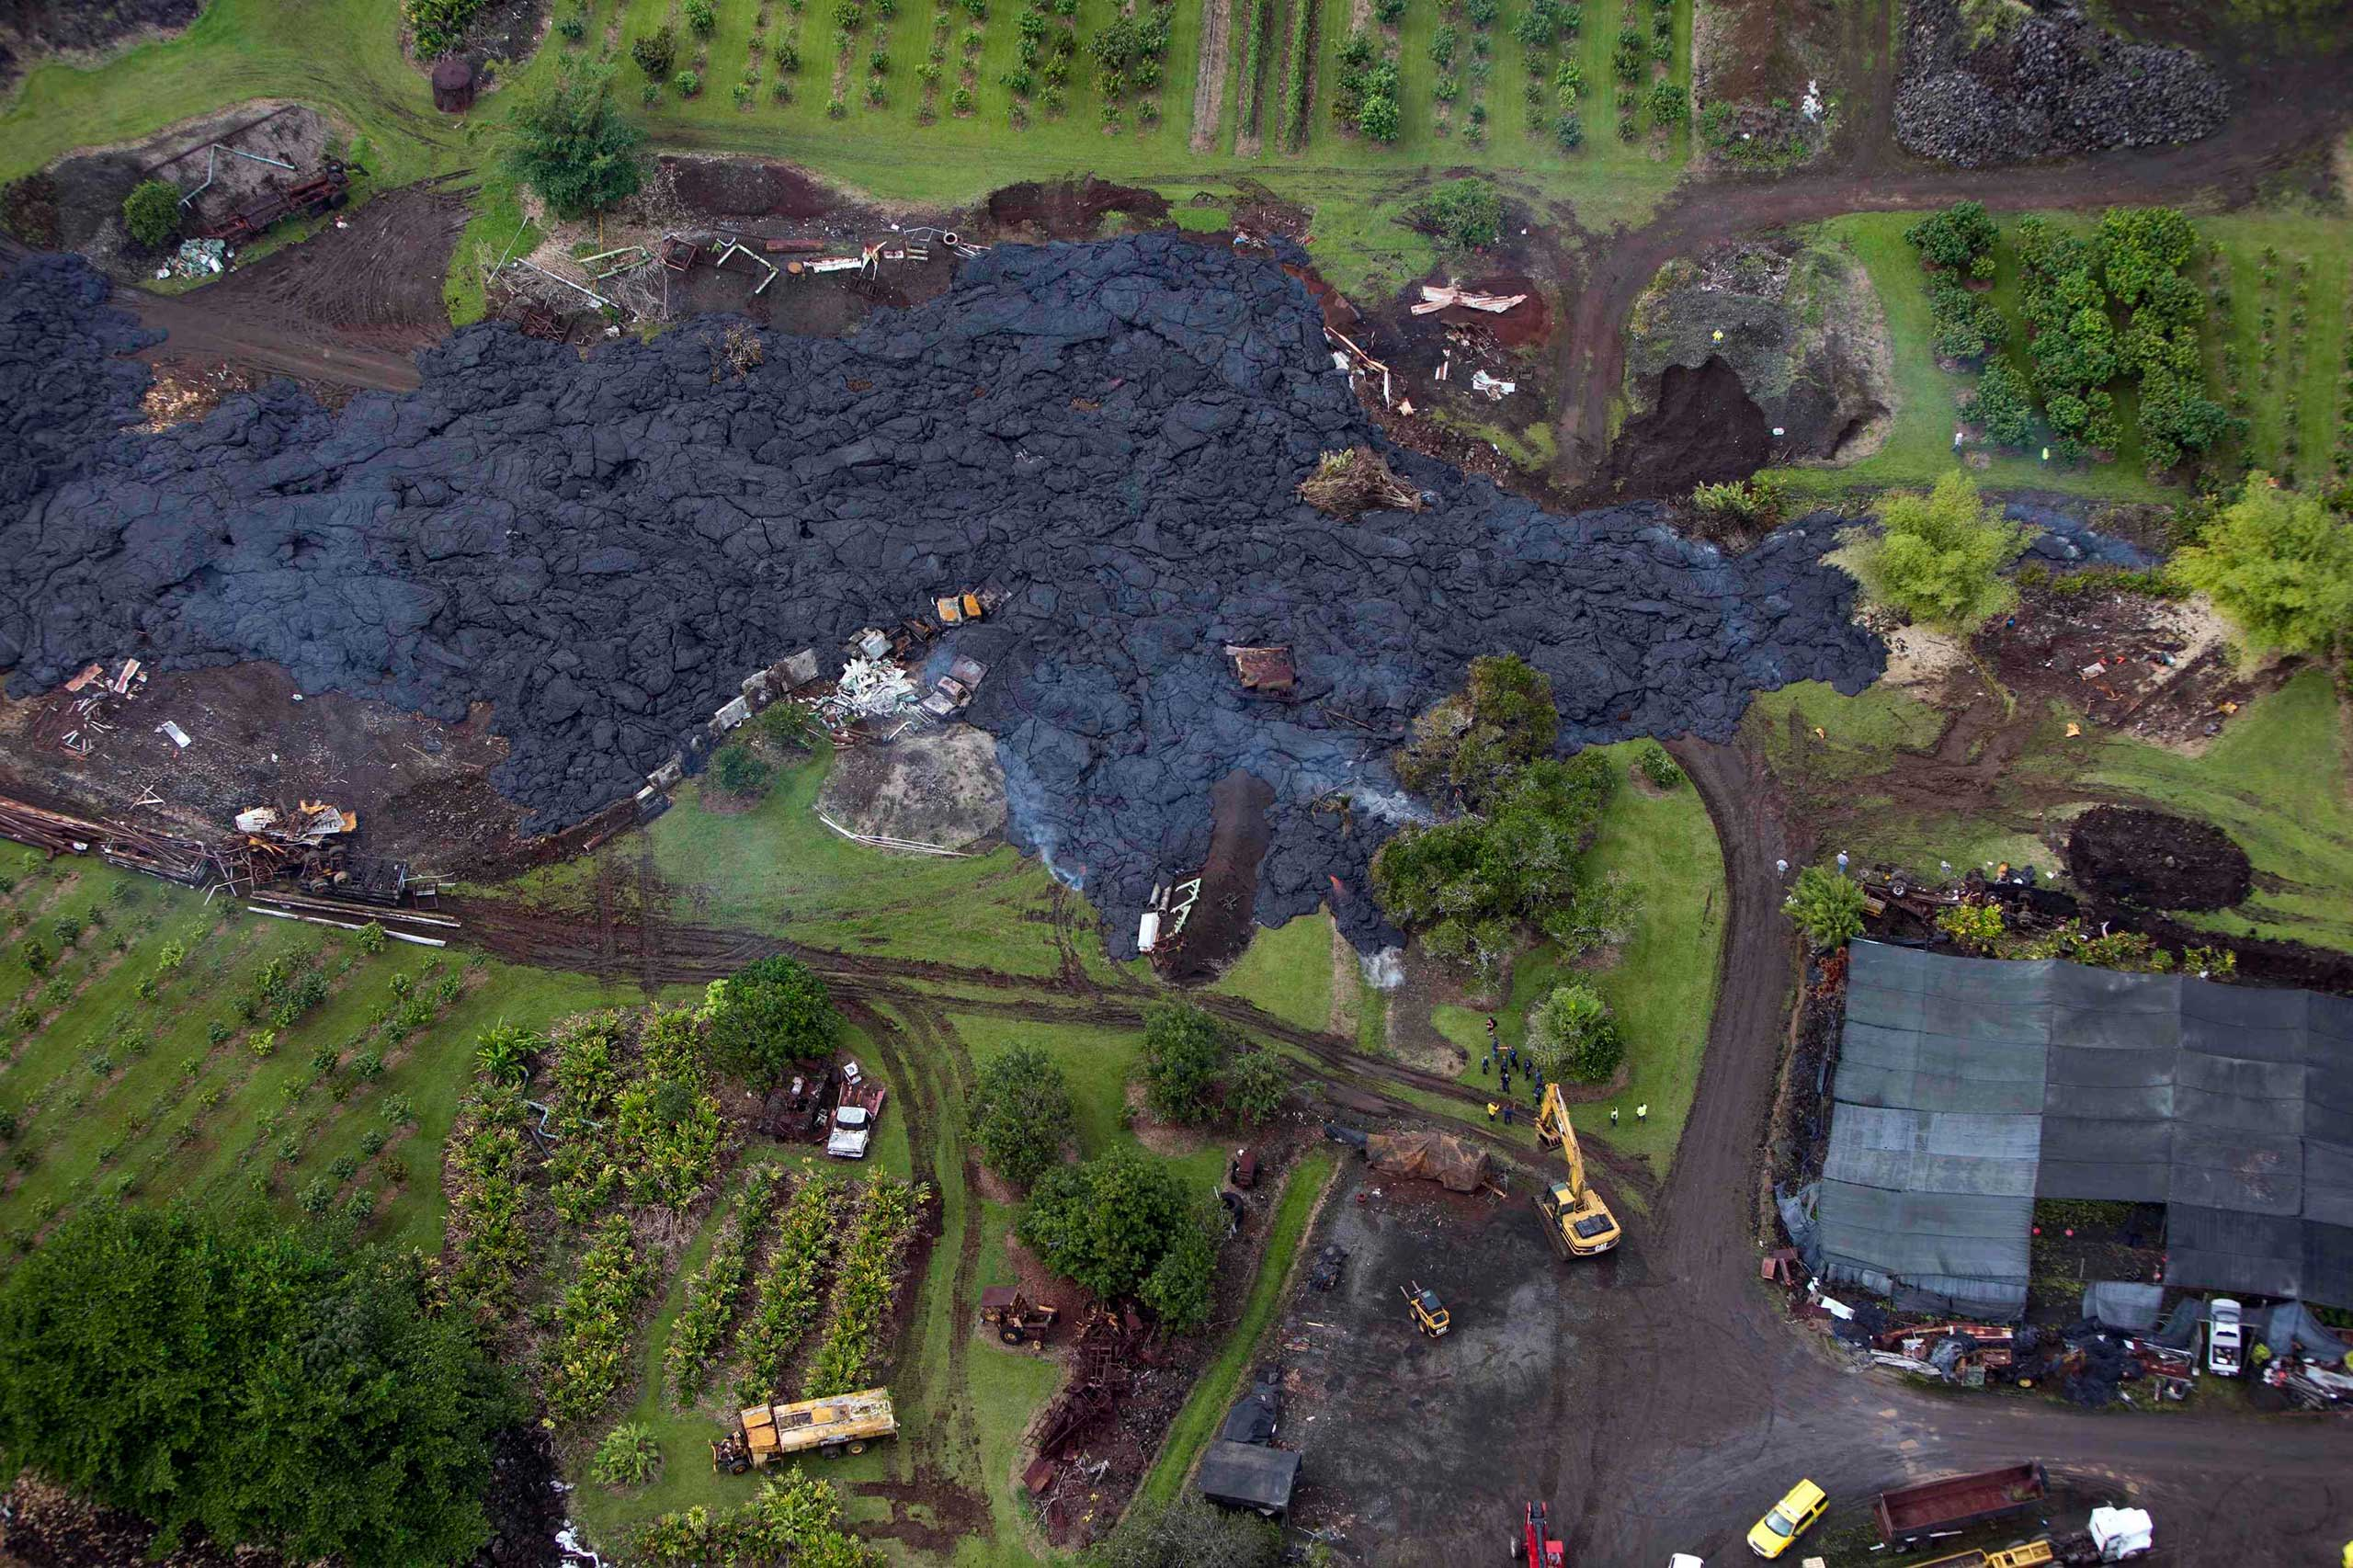 Oct. 29, 2014. Construction crews try divert lava from Mt. Kilauea from a home in the village of Pahoa, Hawaii. A slow-moving river of molten lava from an erupting volcano crept over residential and farm property on Hawaii's Big Island on Wednesday after incinerating an outbuilding as it threatened dozens of homes at the edge of a former plantation town.